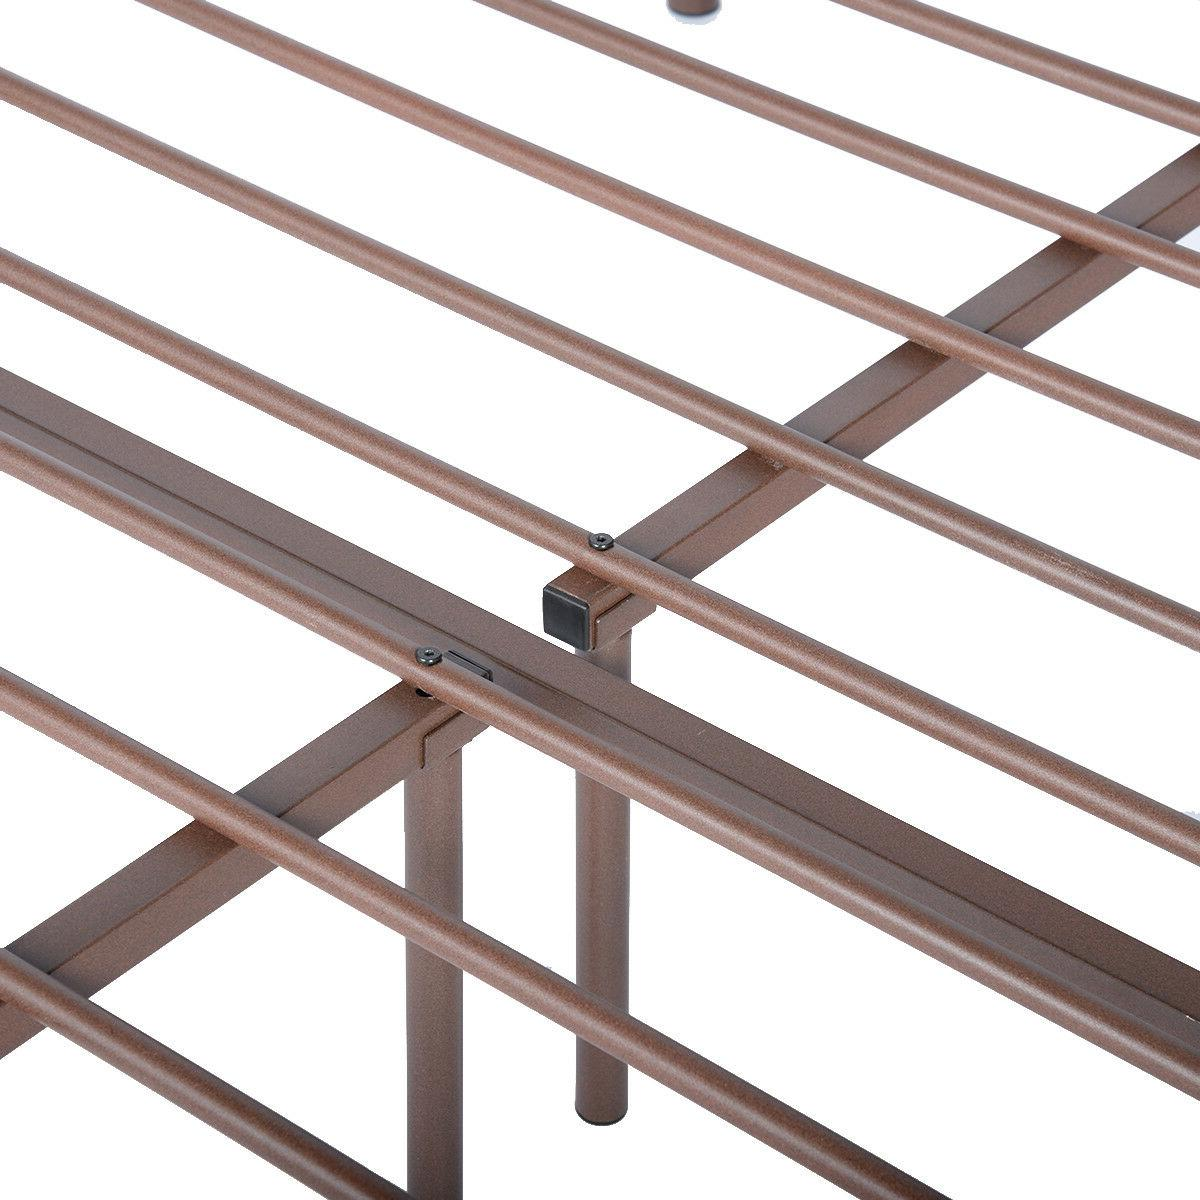 Metal Size Bed Frame Mattress Foundation Headboard and Footboard